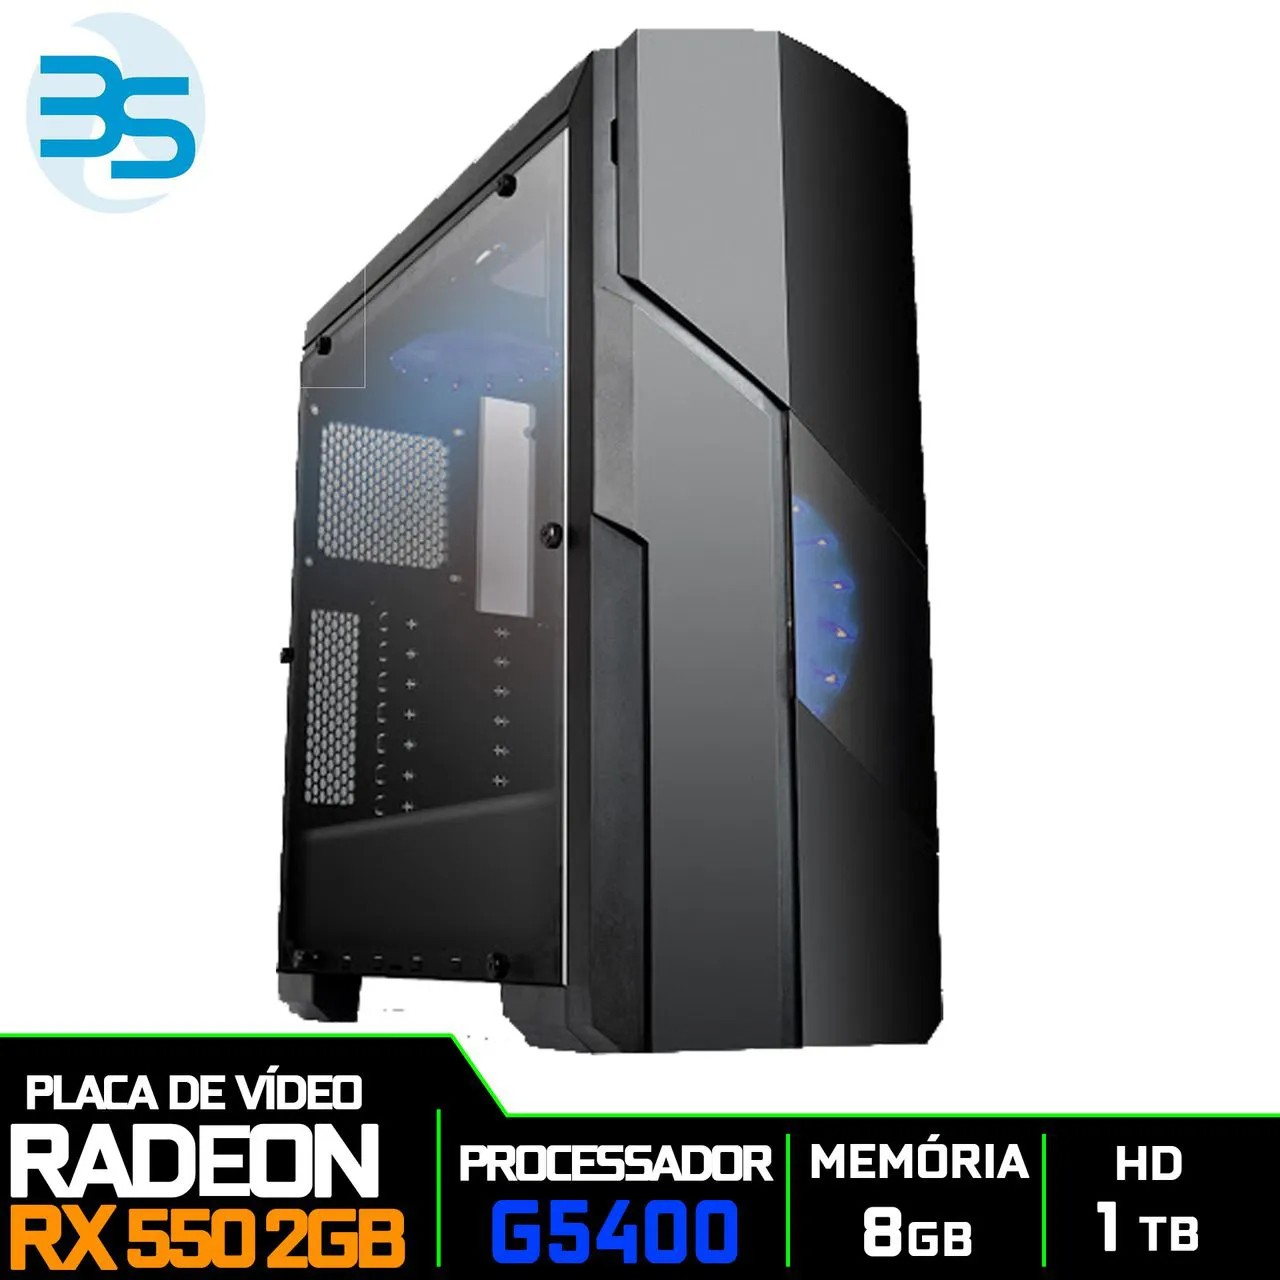 Bs Gamer Intel G5400 3.70GHZ 4MB, 8GB DDR4, HD 1TB, 400W, RX 550 2GB